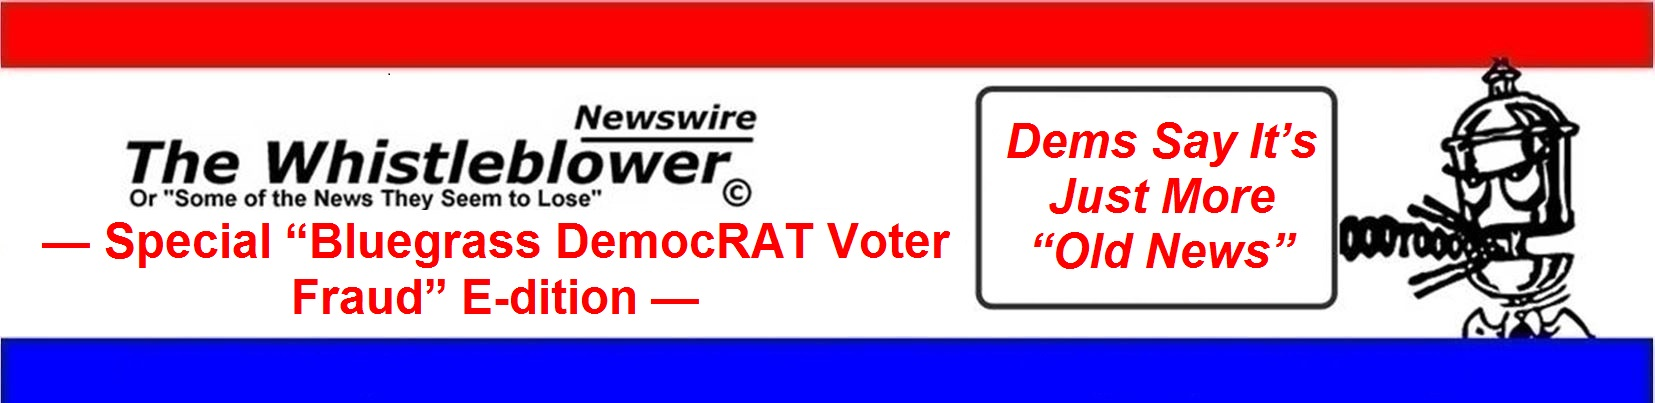 MAY 22 DEM VOTER FRAUD